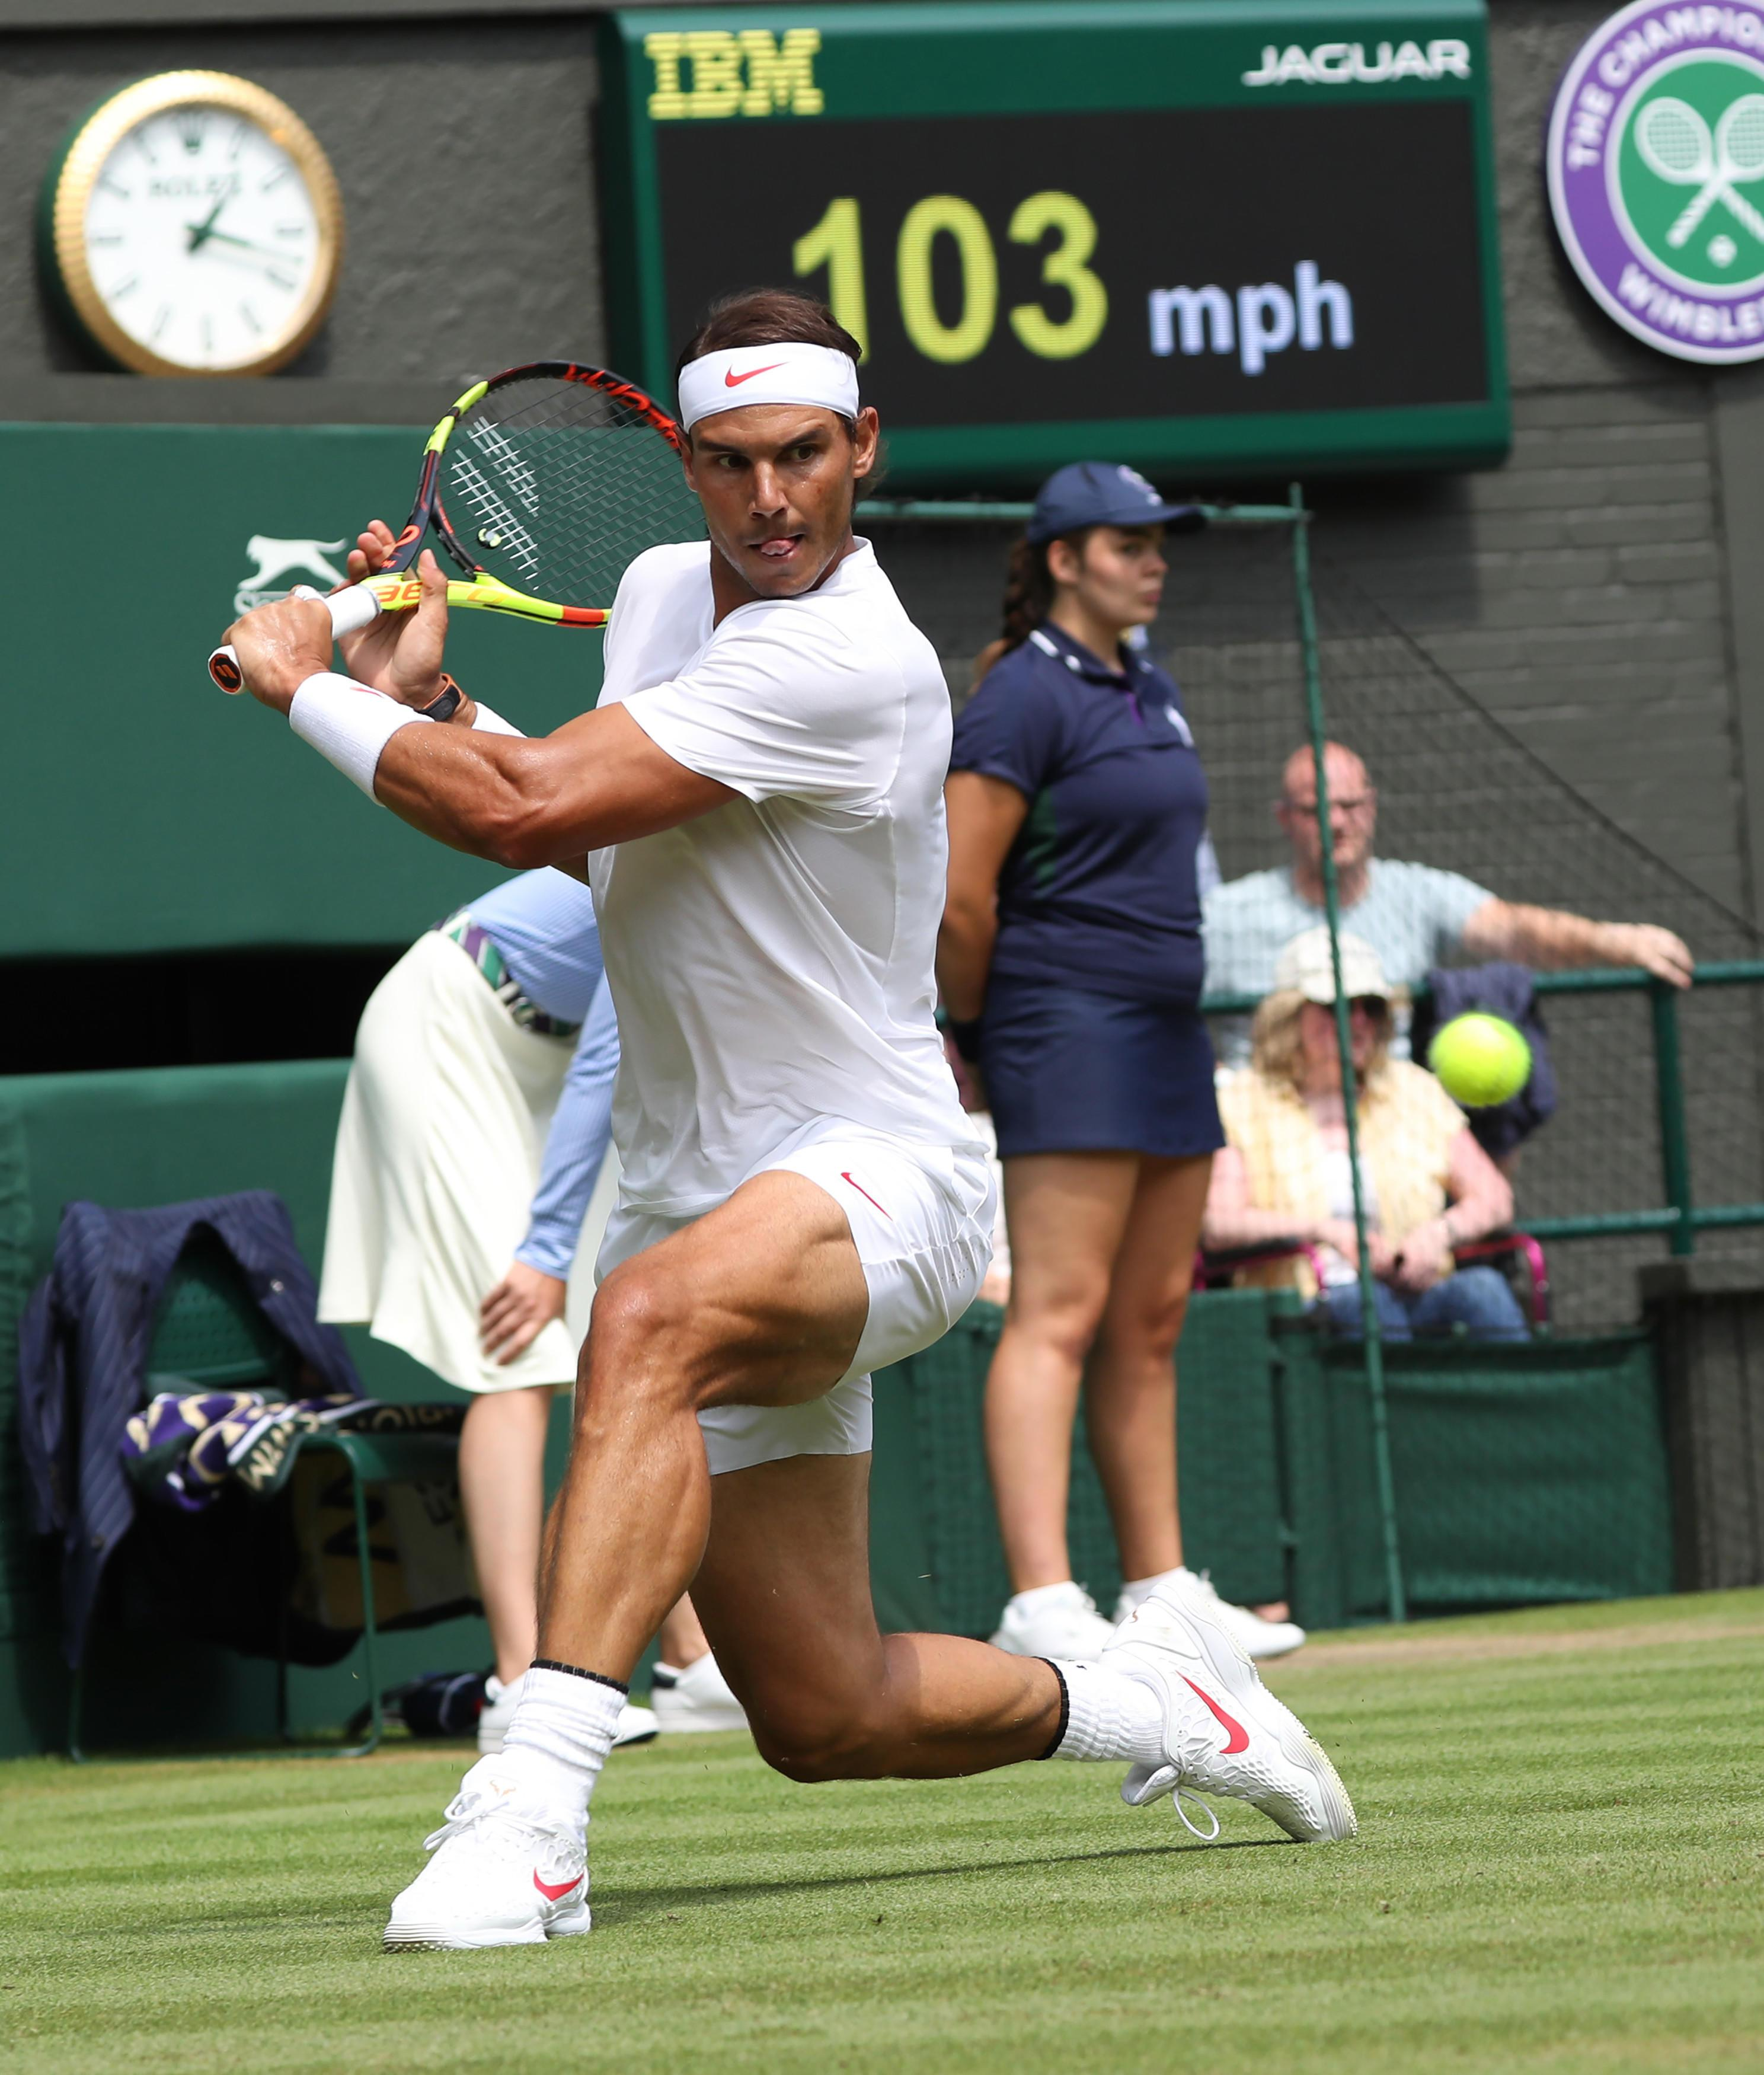 The world number one was in complete control after a nervous start as he continued his challenge for Wimbledon